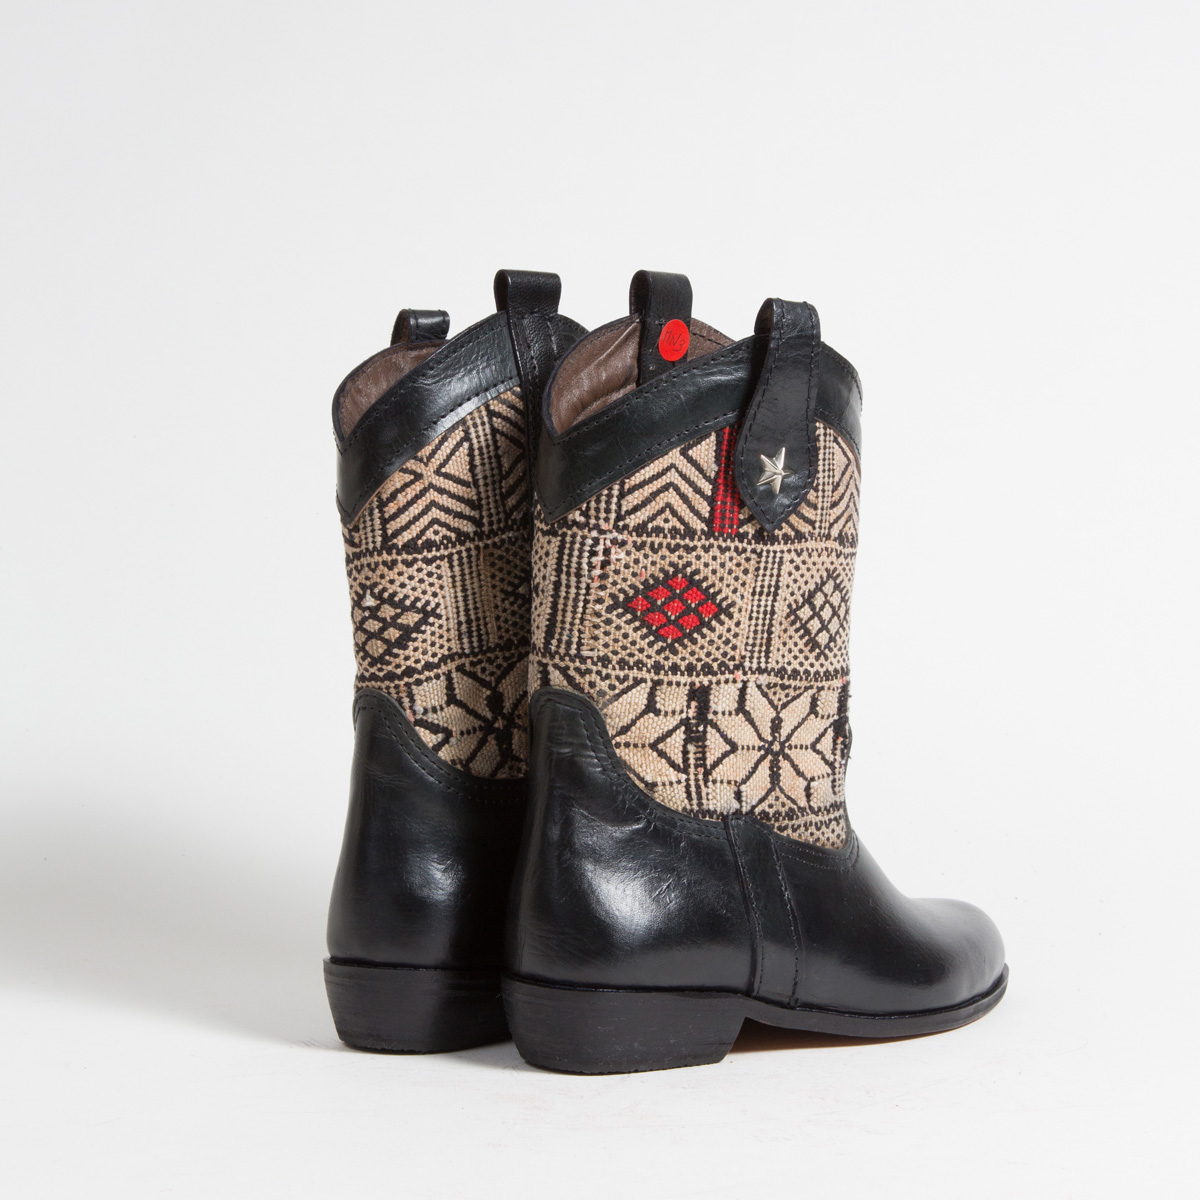 Bottines Kilim cuir mababouche artisanales (Réf. MN3-37)